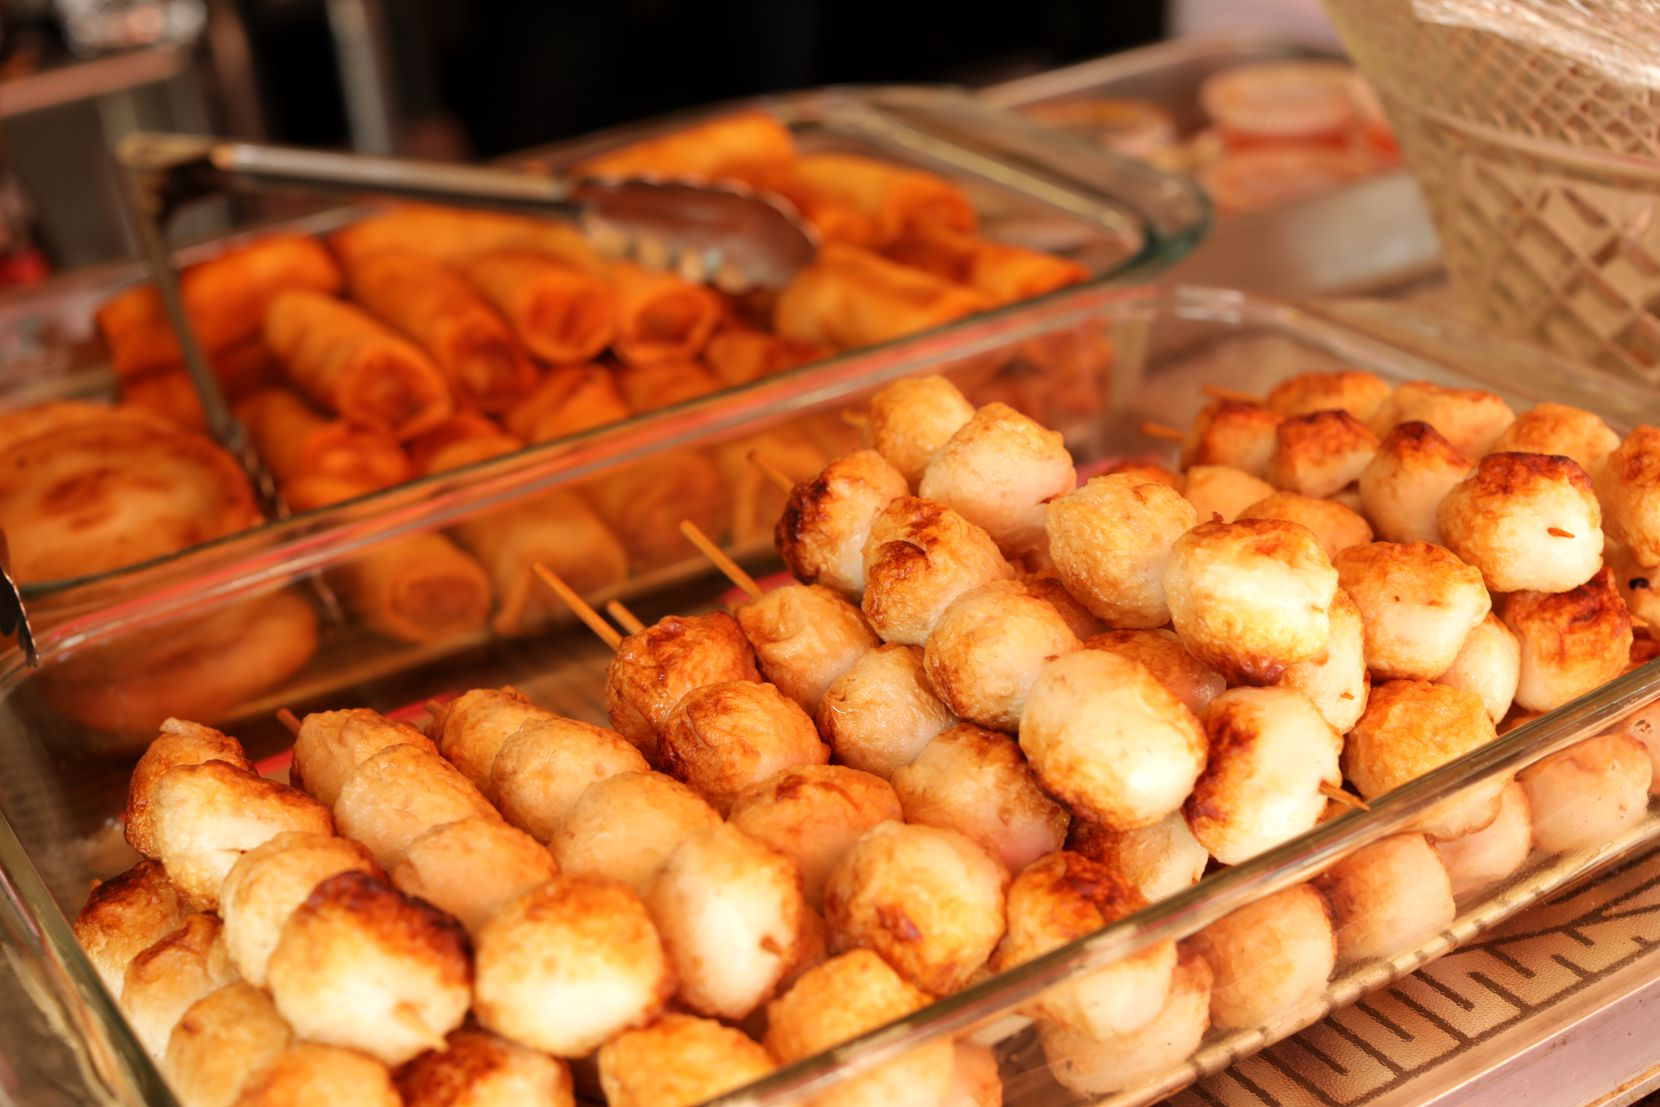 The Sunday market offers authentic Thai street food.